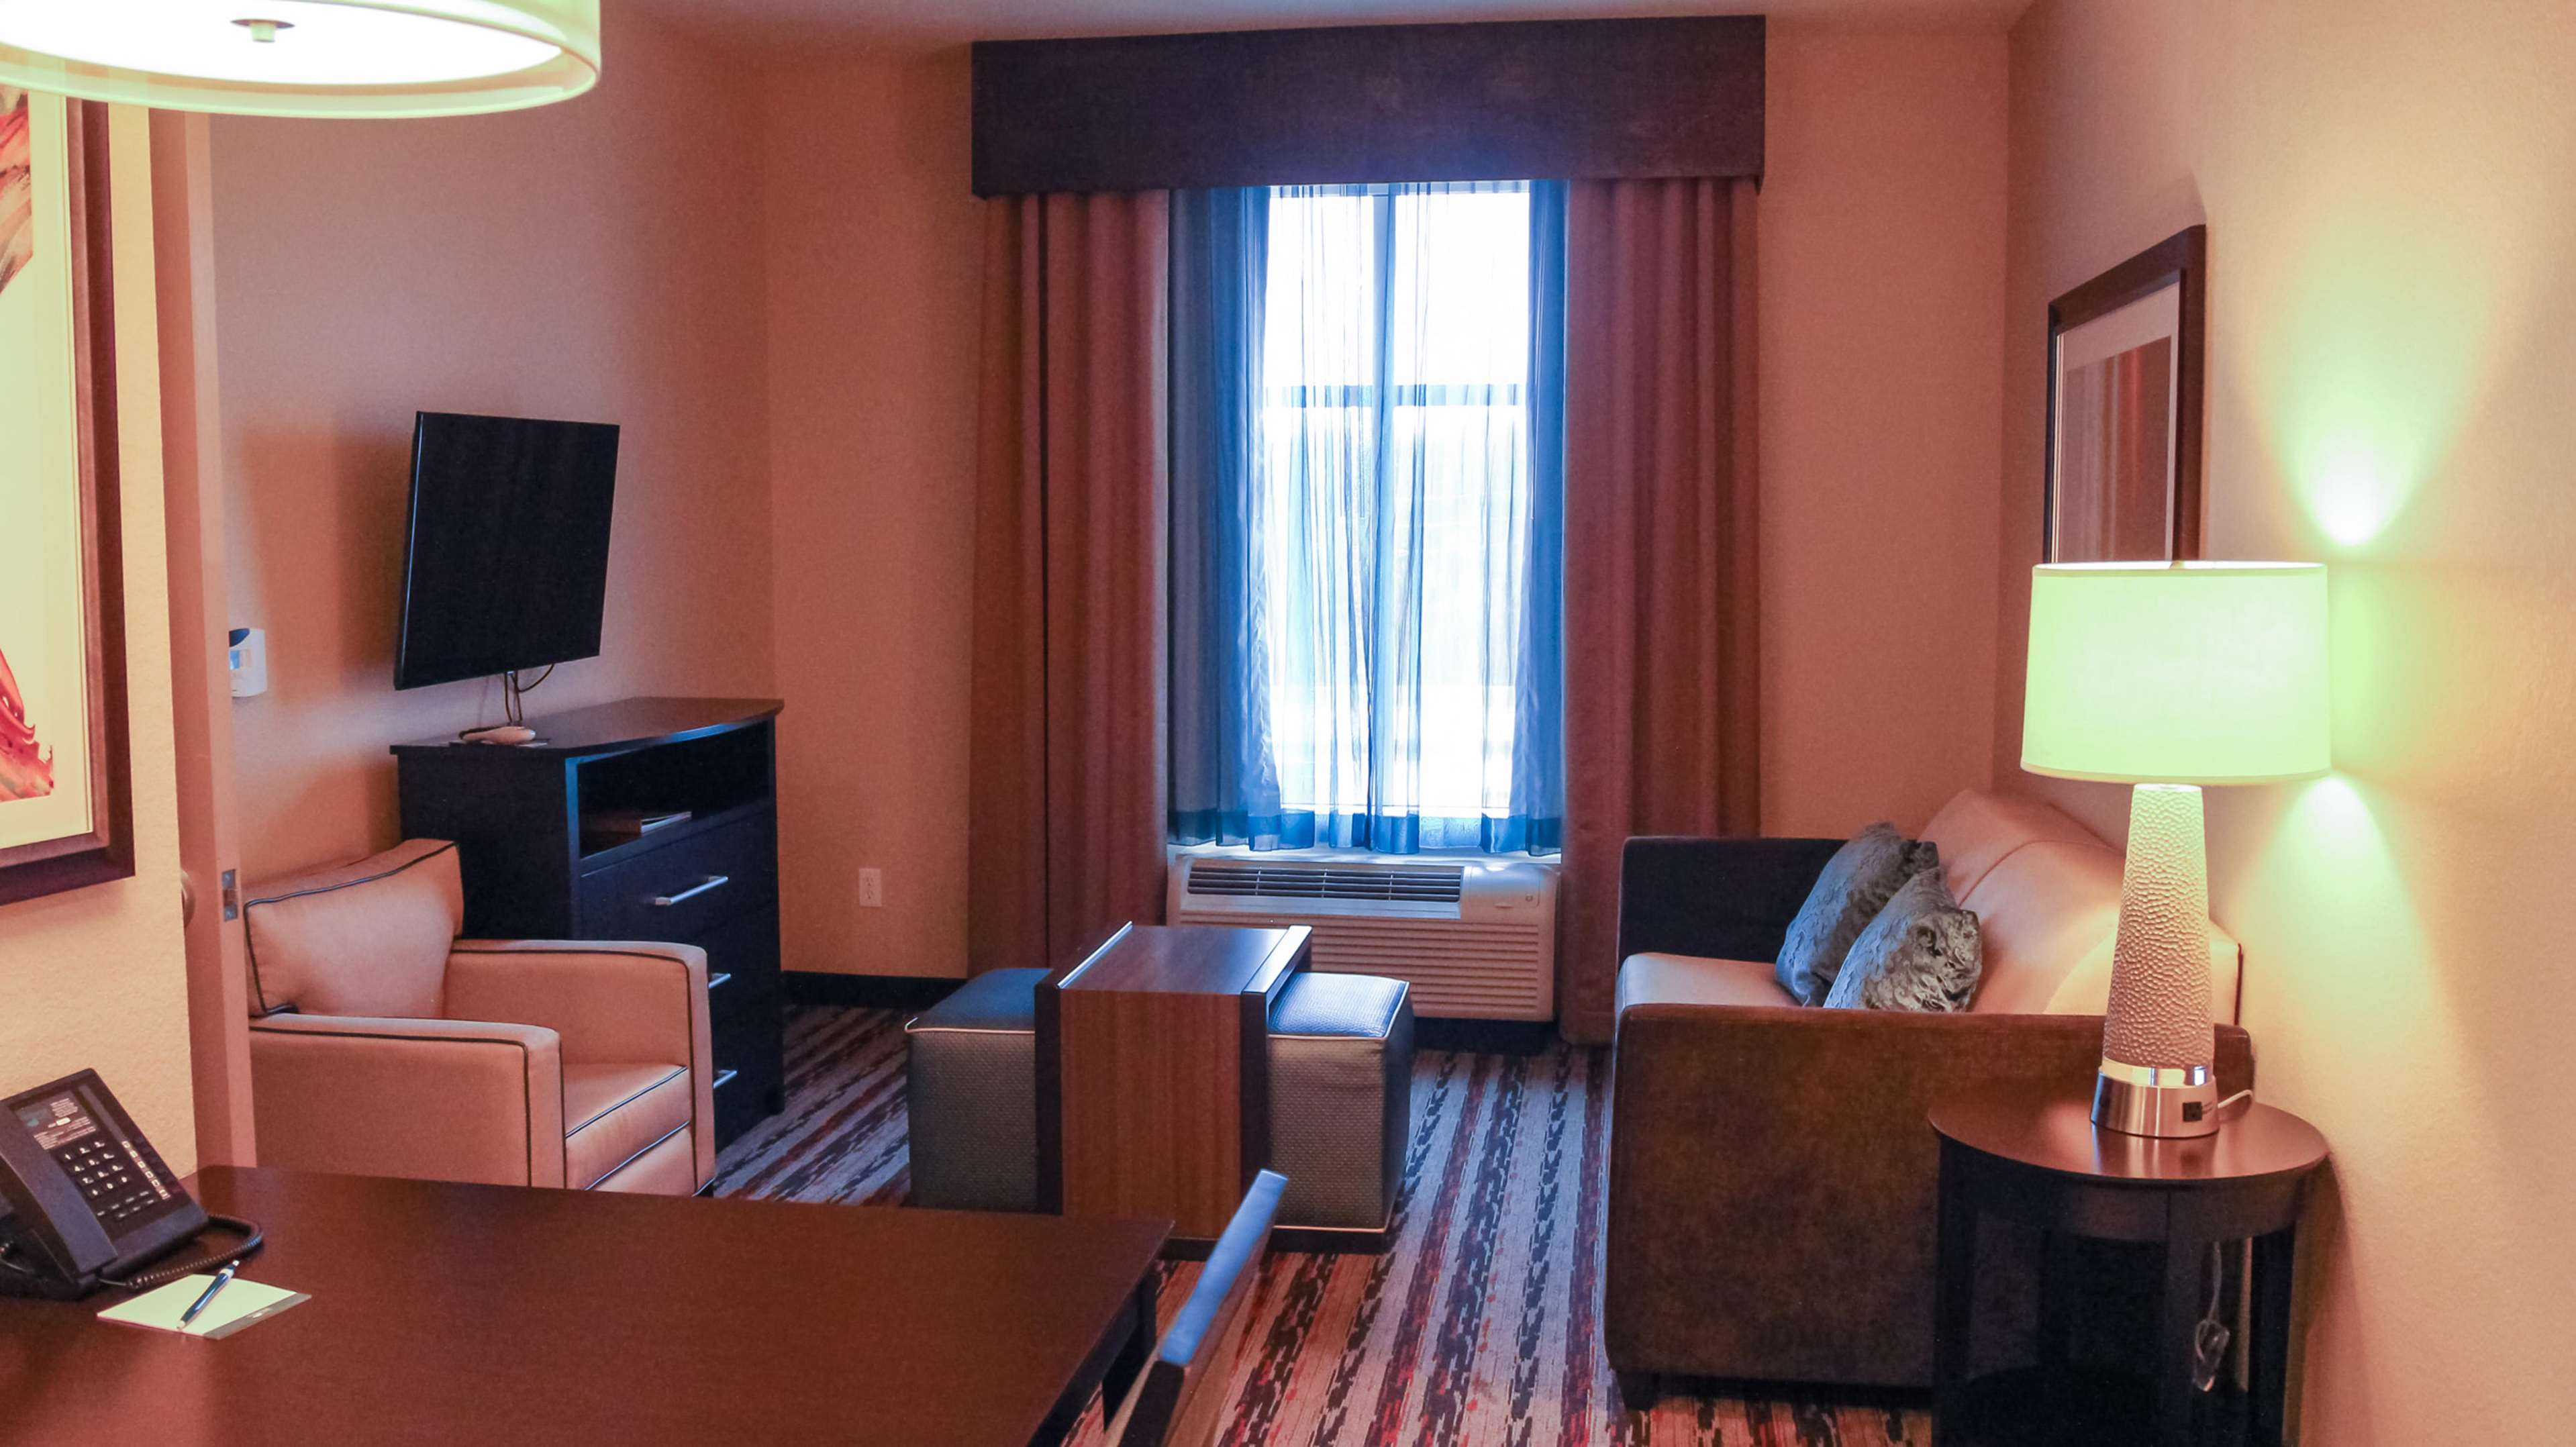 Homewood Suites by Hilton North Houston/Spring image 23